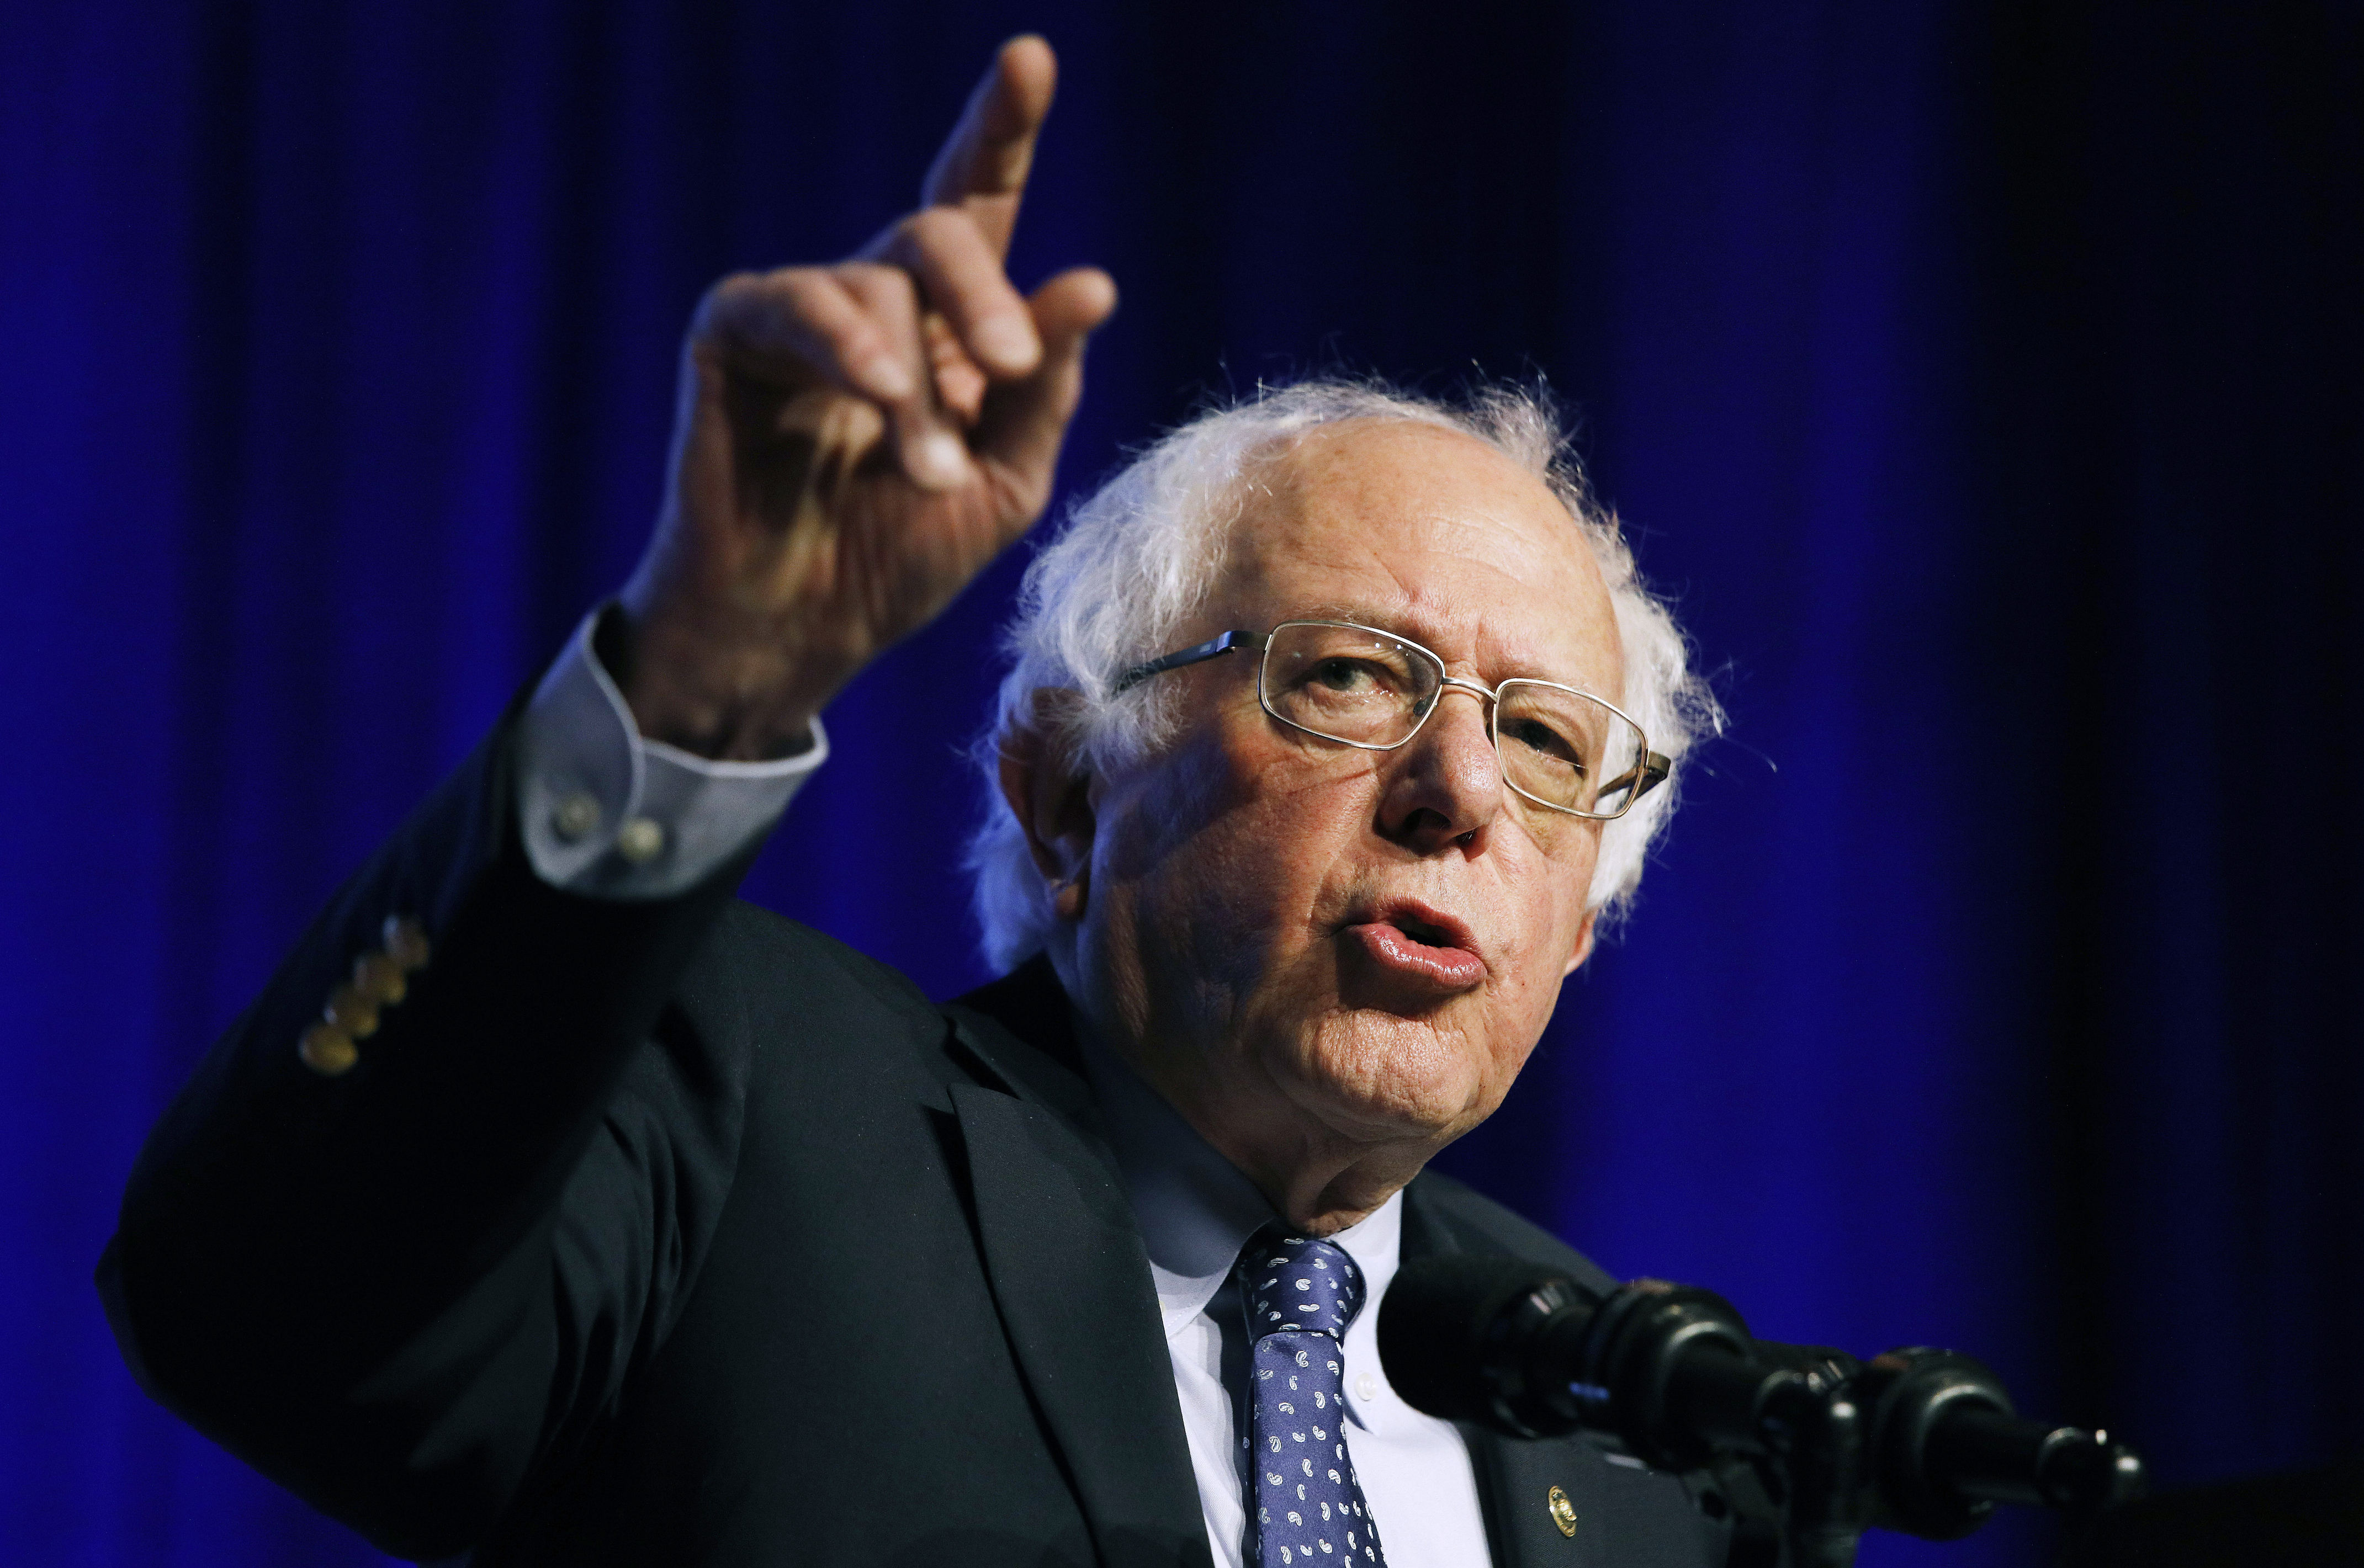 Bernie Sanders relying on Michigan to take the White House in 2020